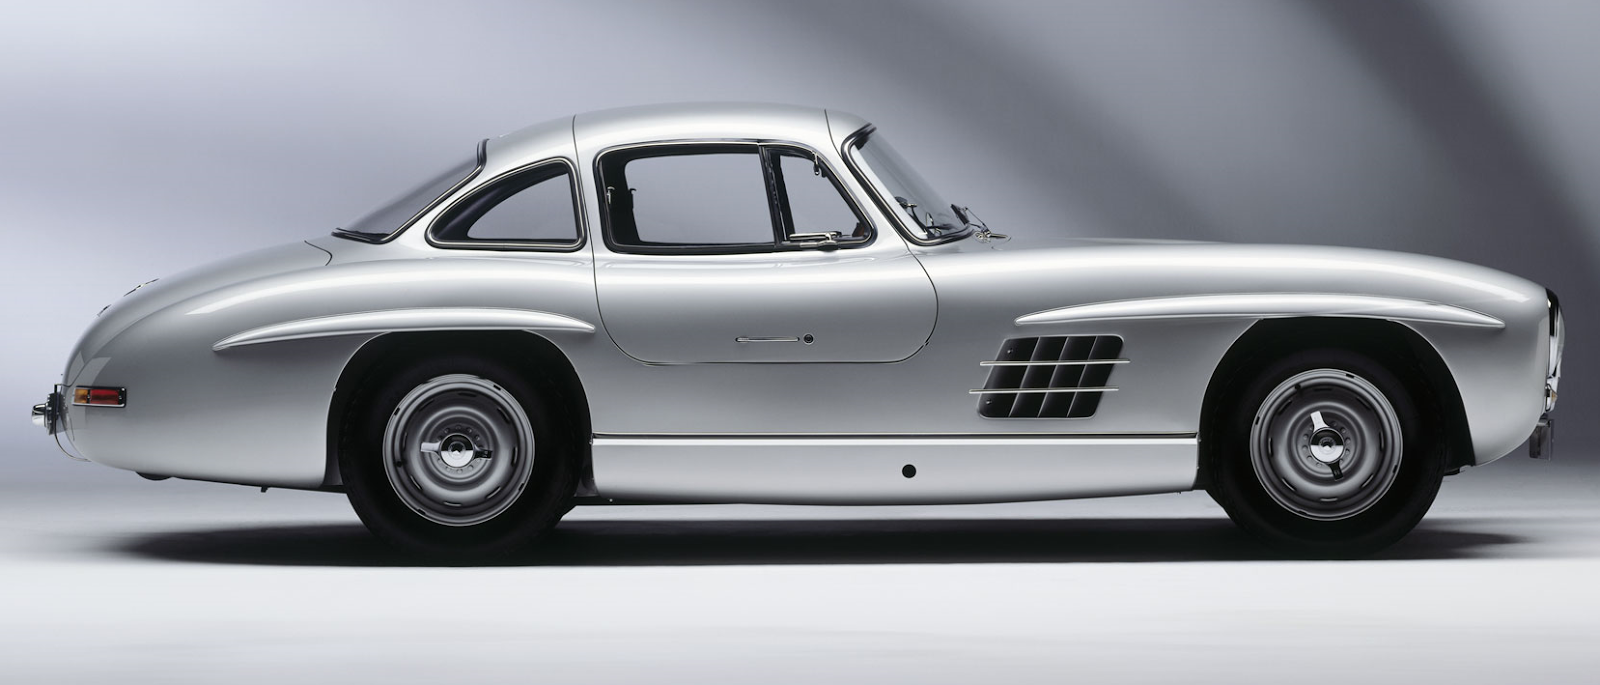 supercarworld 1954 mercedes benz 300 sl gullwing coupe. Black Bedroom Furniture Sets. Home Design Ideas